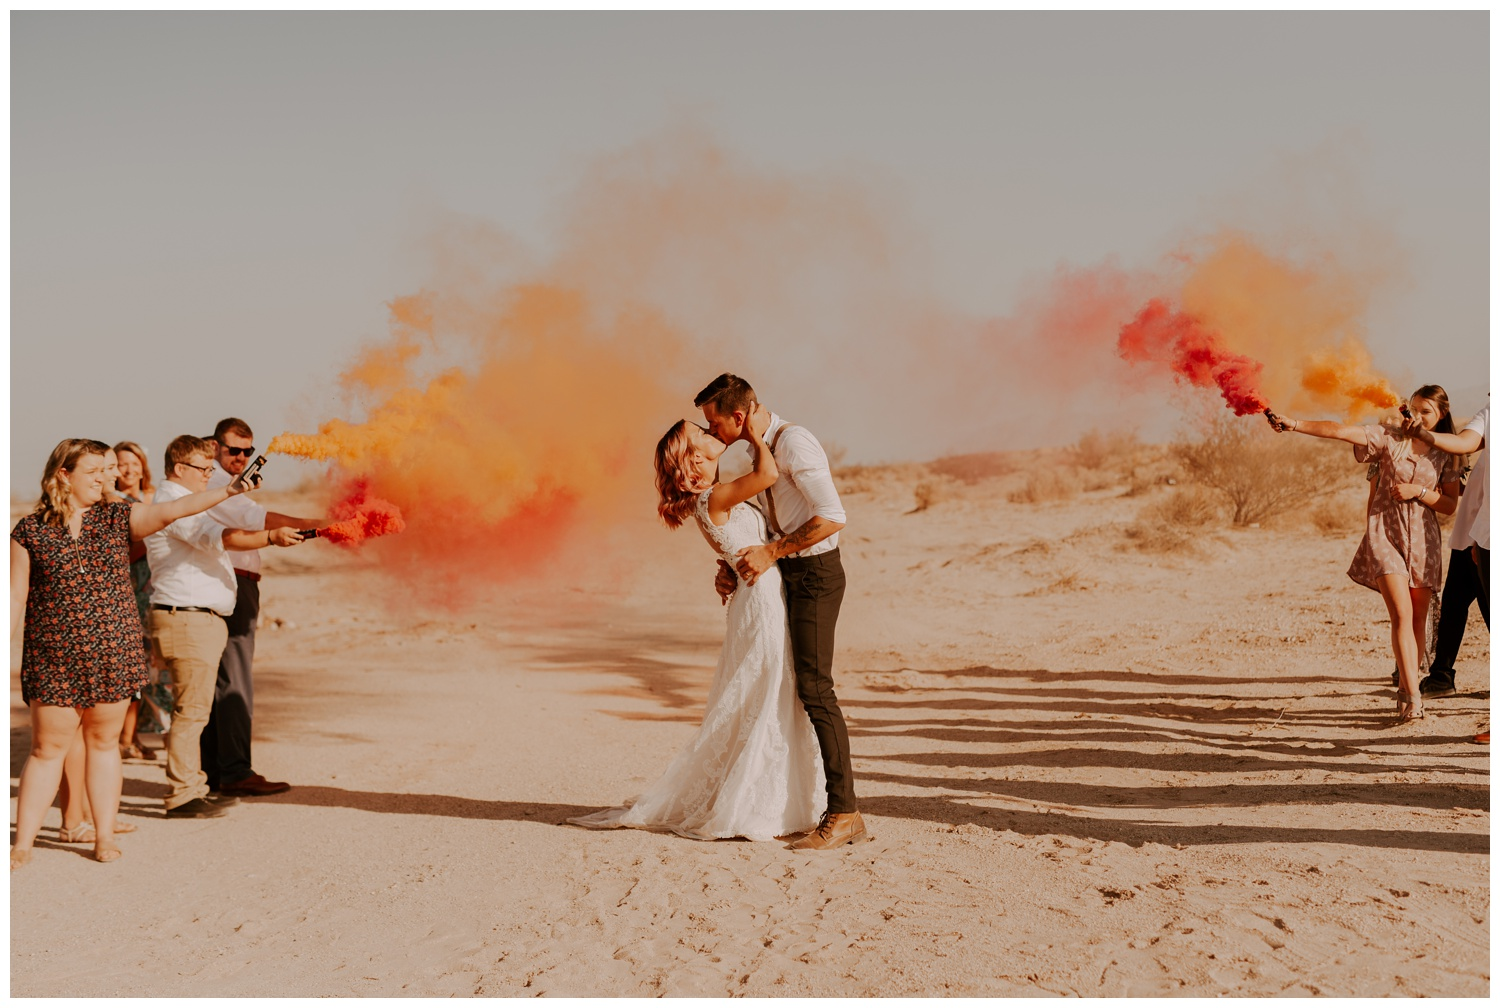 Salvation Mountain Elopement Palm Springs Pink Hair Bride - Jessica Heron Images_0141.jpg